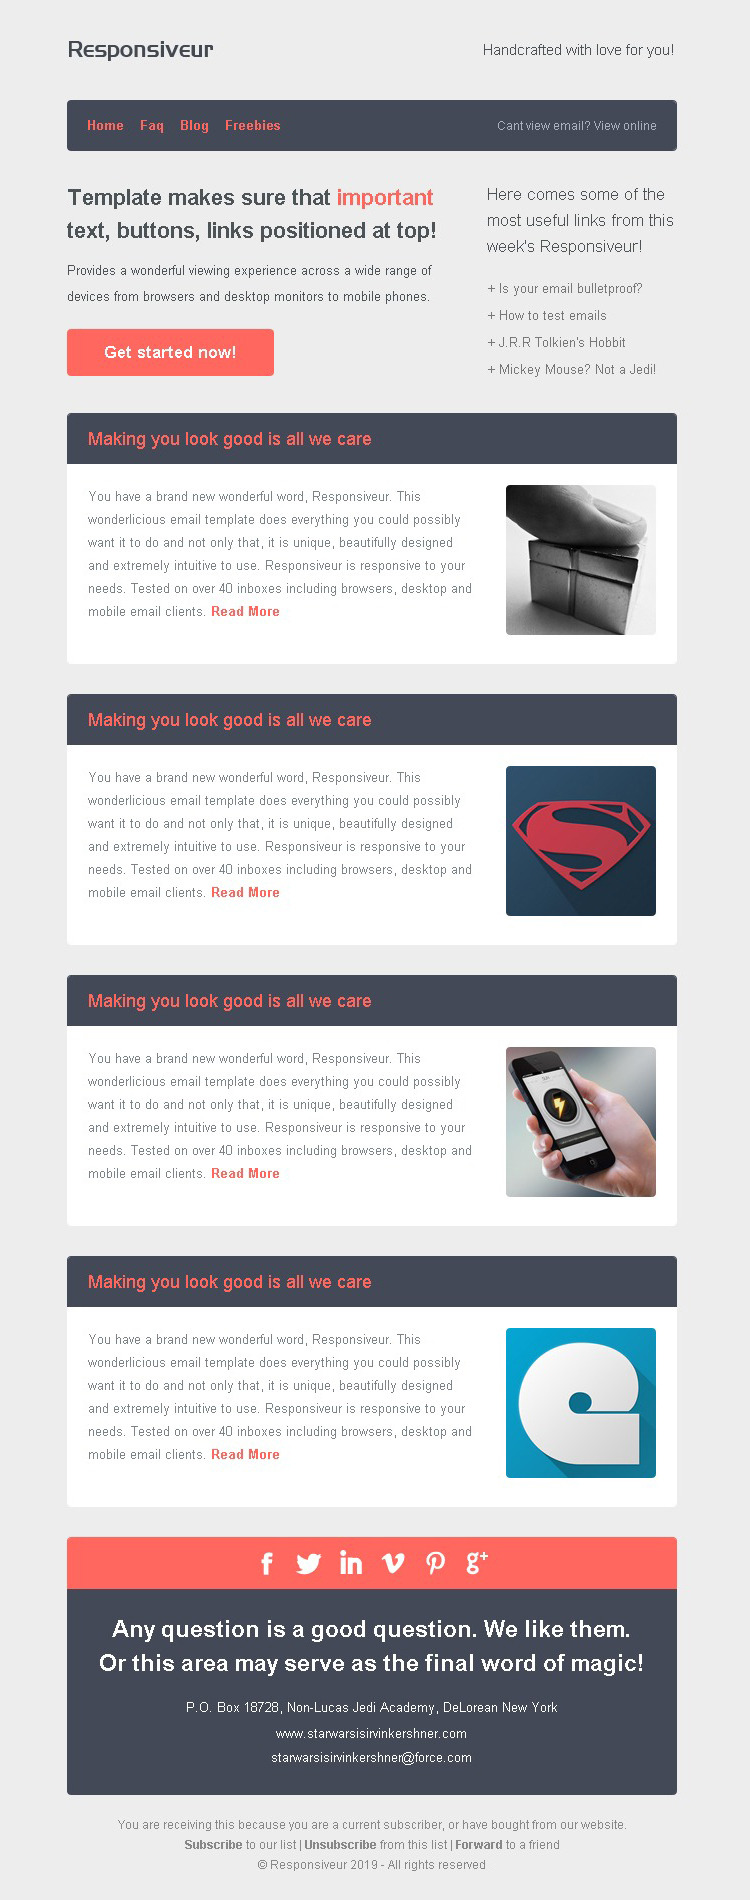 Responsiveur responsive email newsletter templates by for How to make a responsive email template